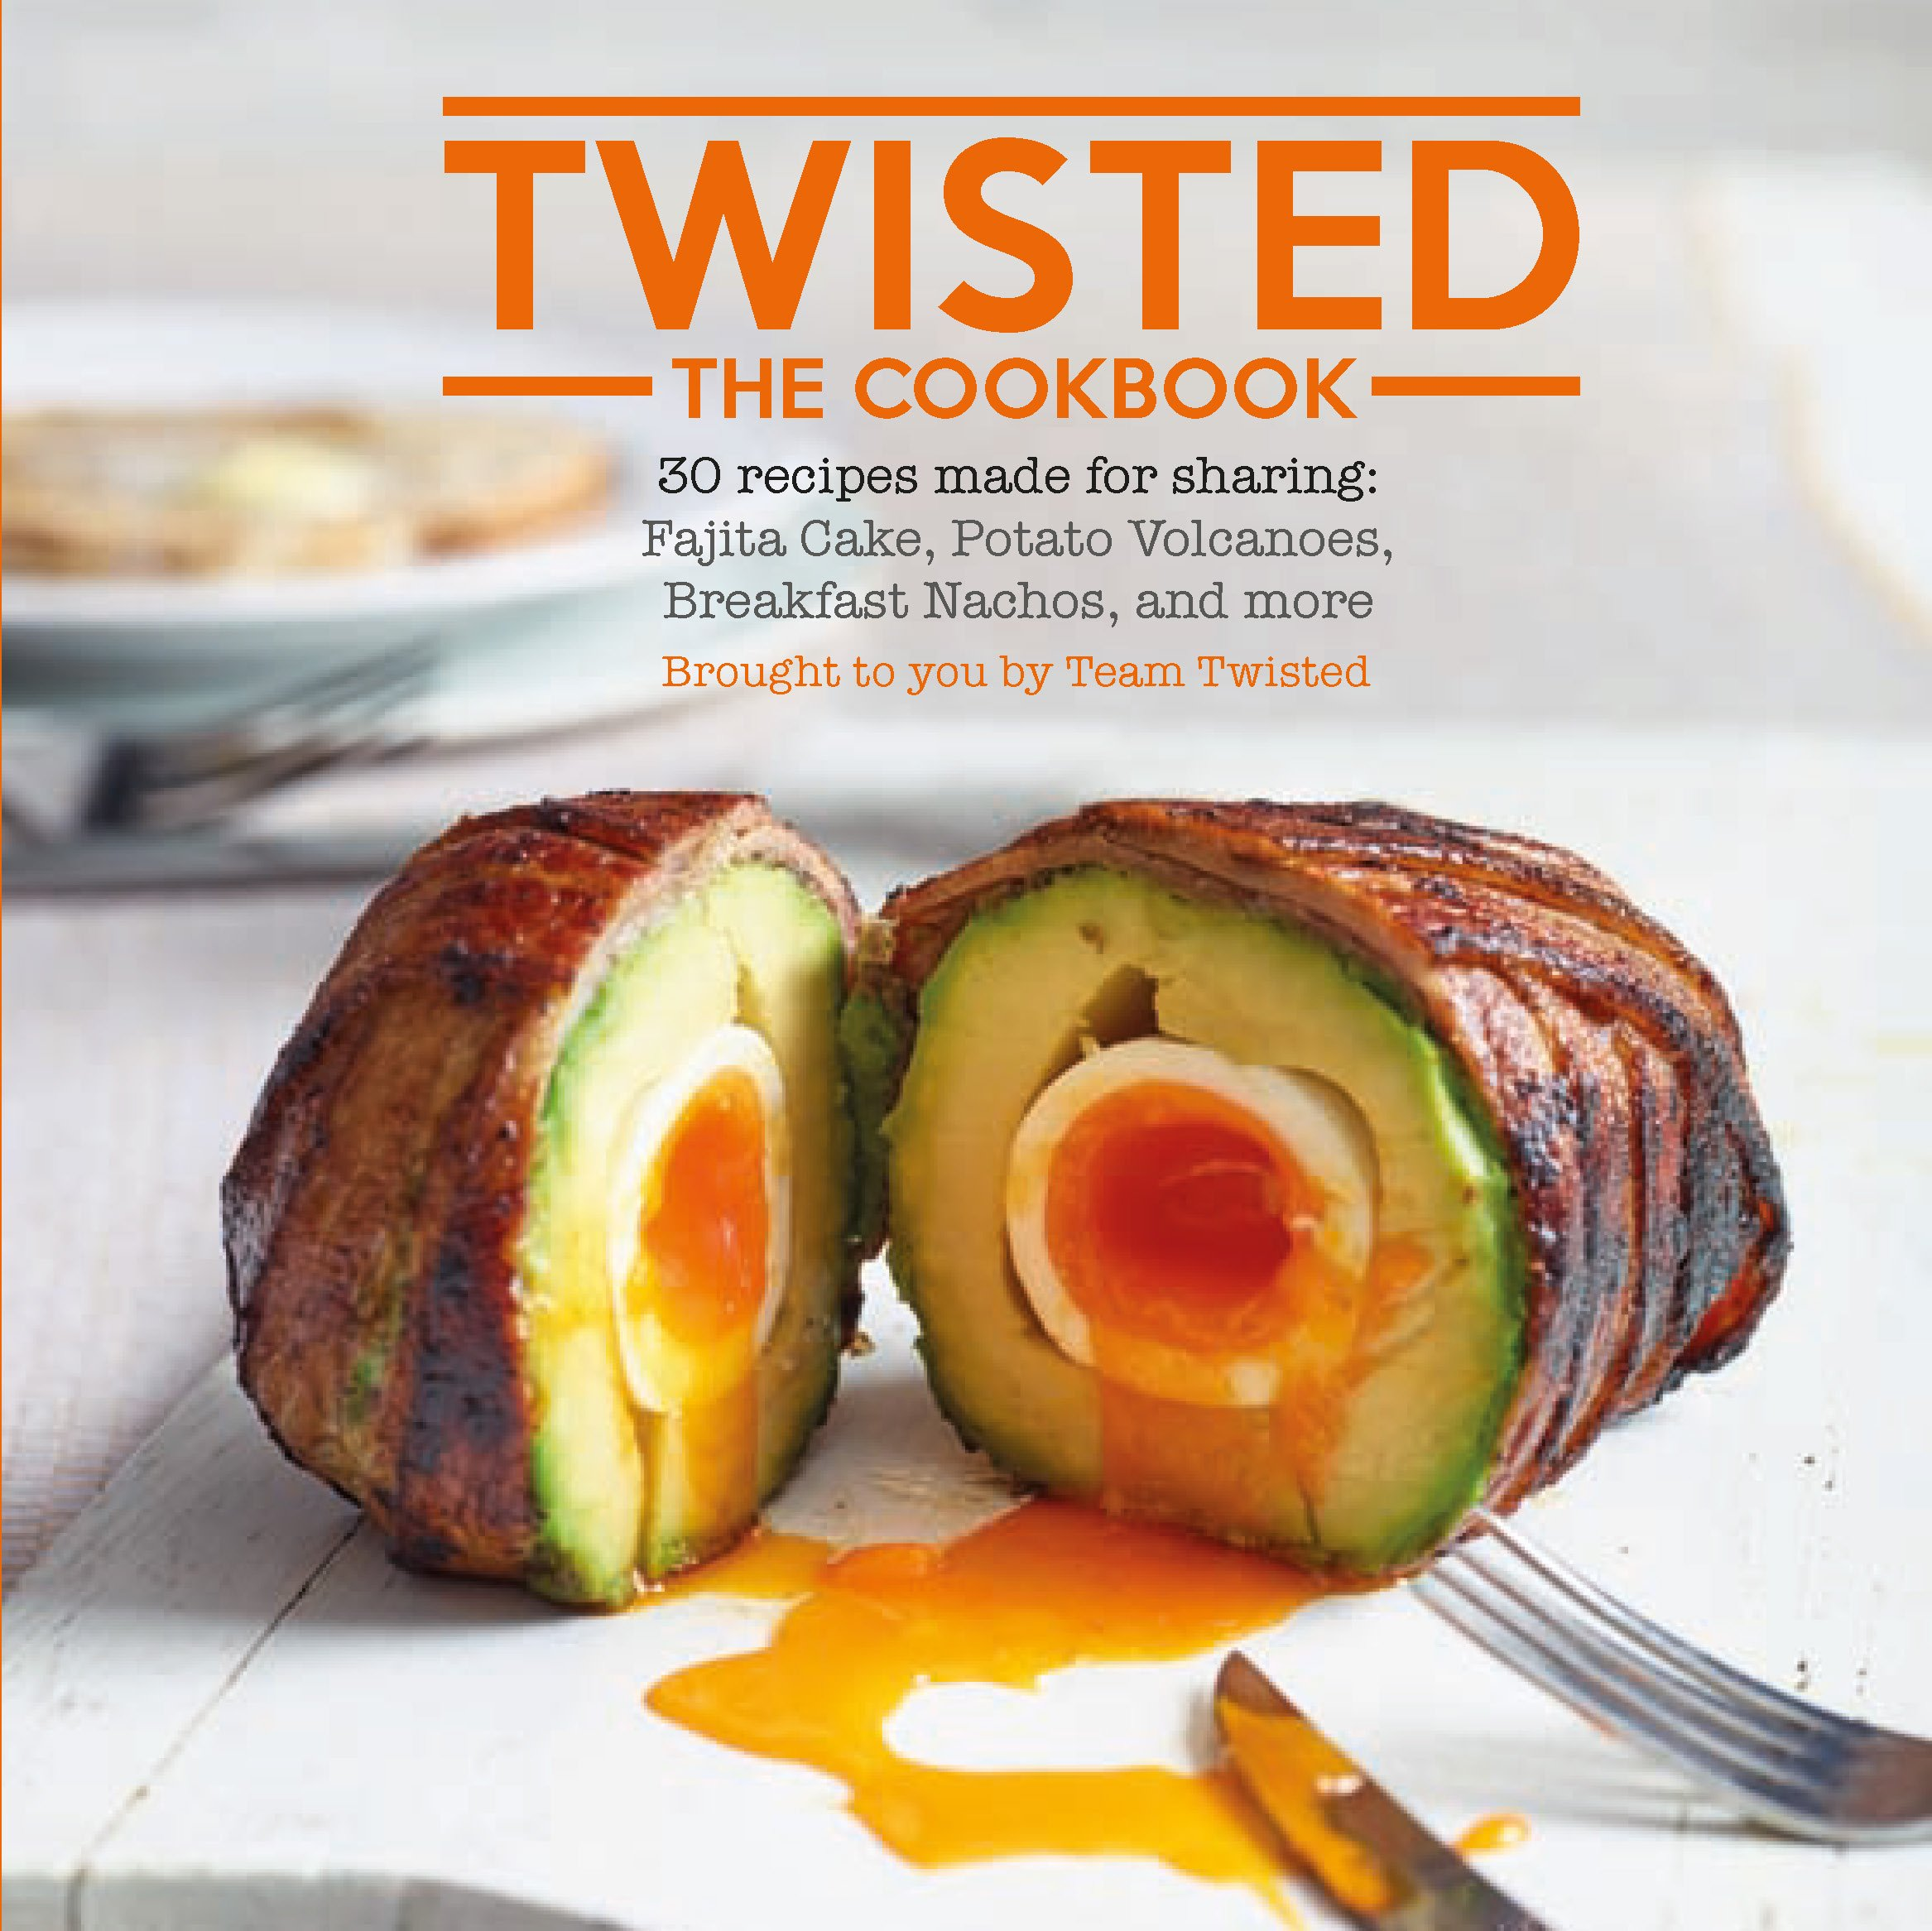 Twisted the cookbook team twisted 9781849758444 amazon books forumfinder Image collections